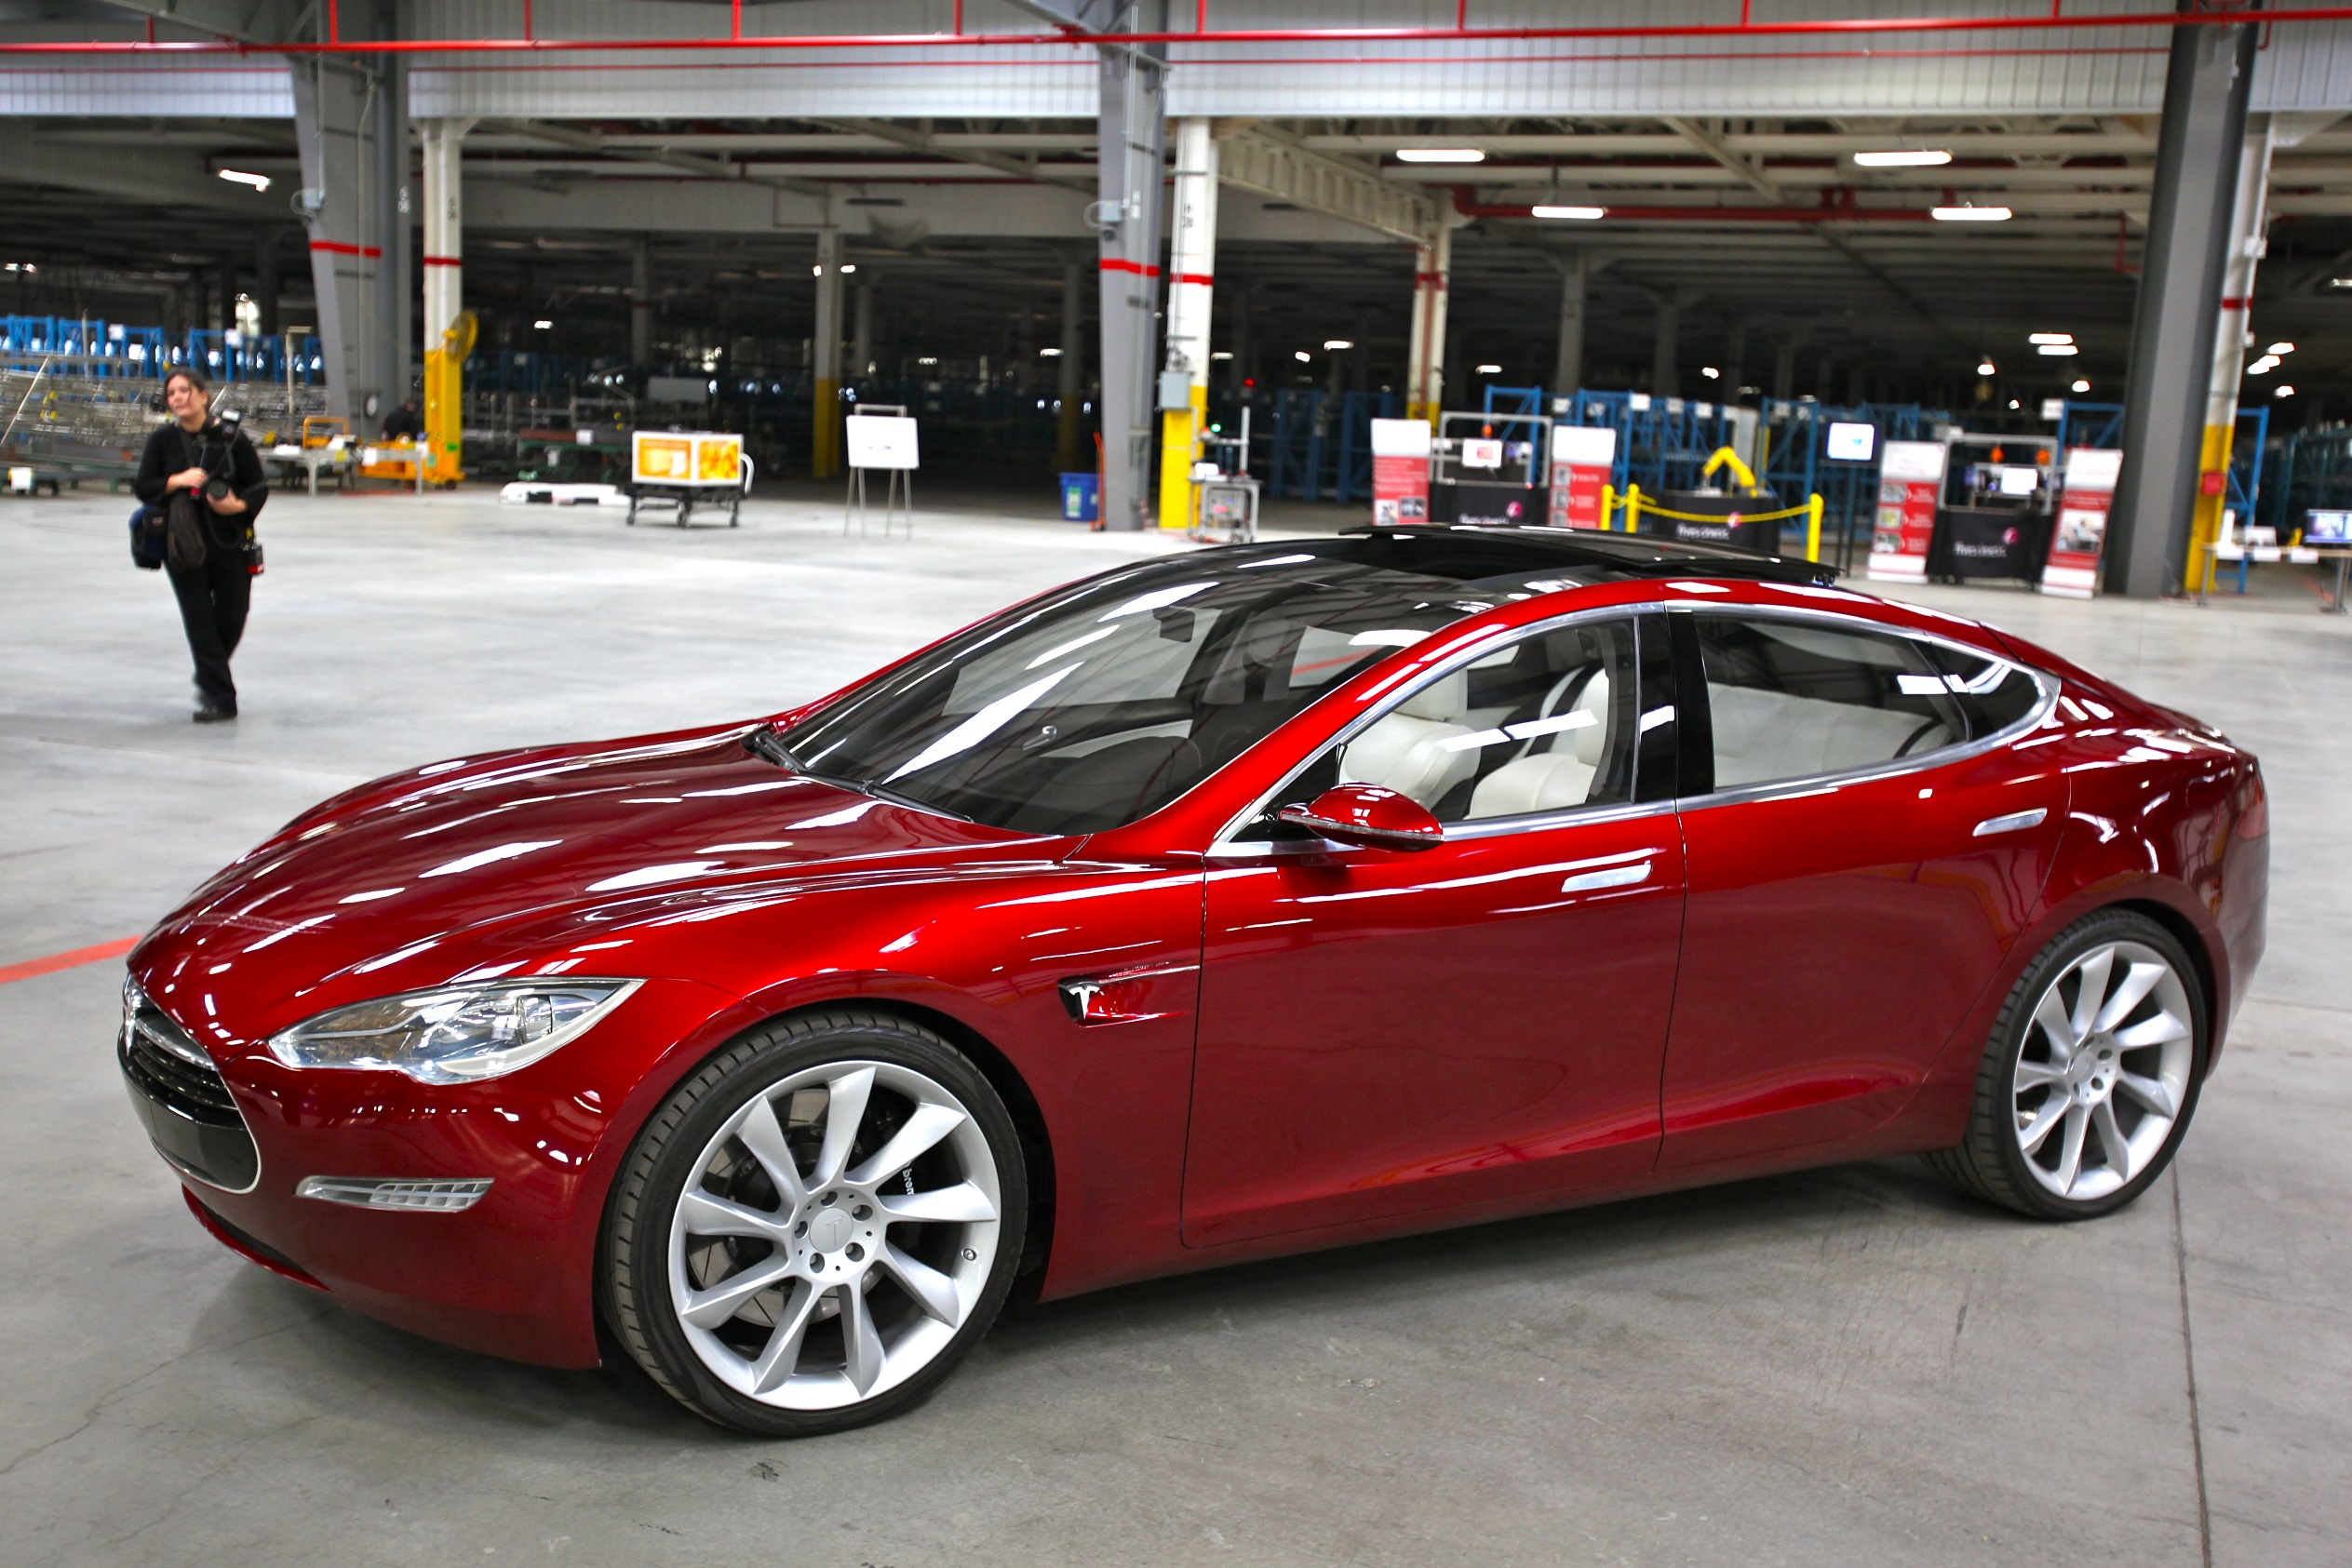 Red Tesla Model S indoors